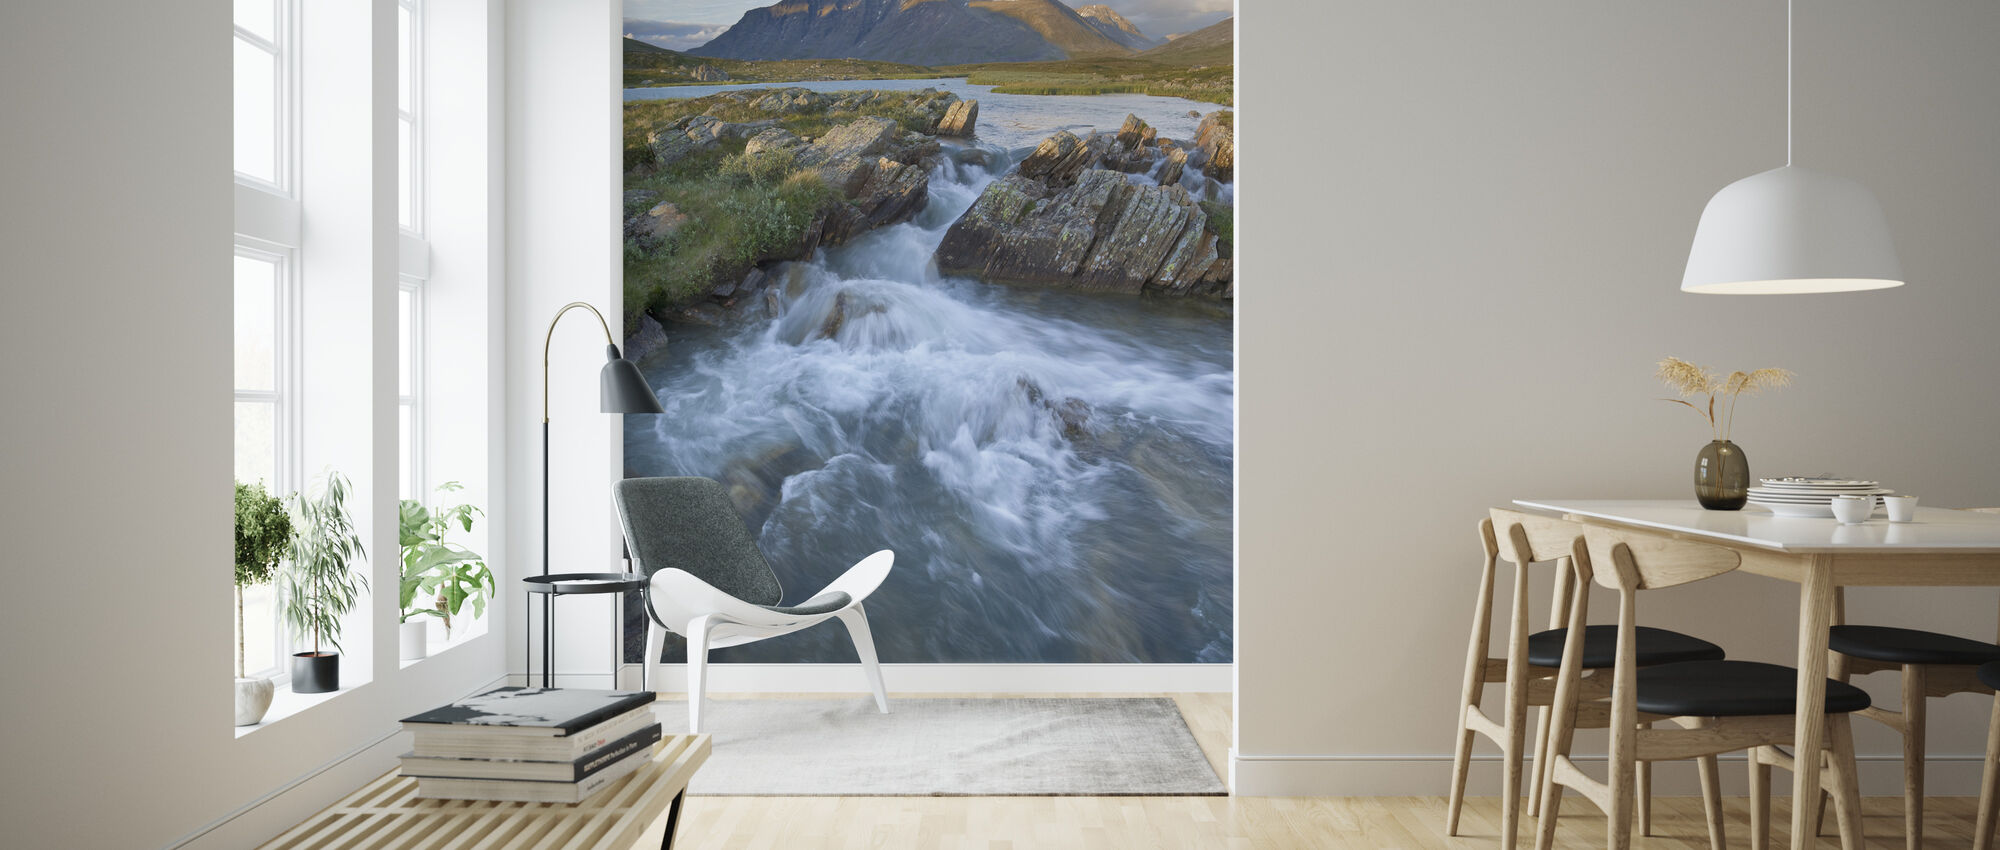 Stream in Sarek National Park, Zweden - Behang - Woonkamer